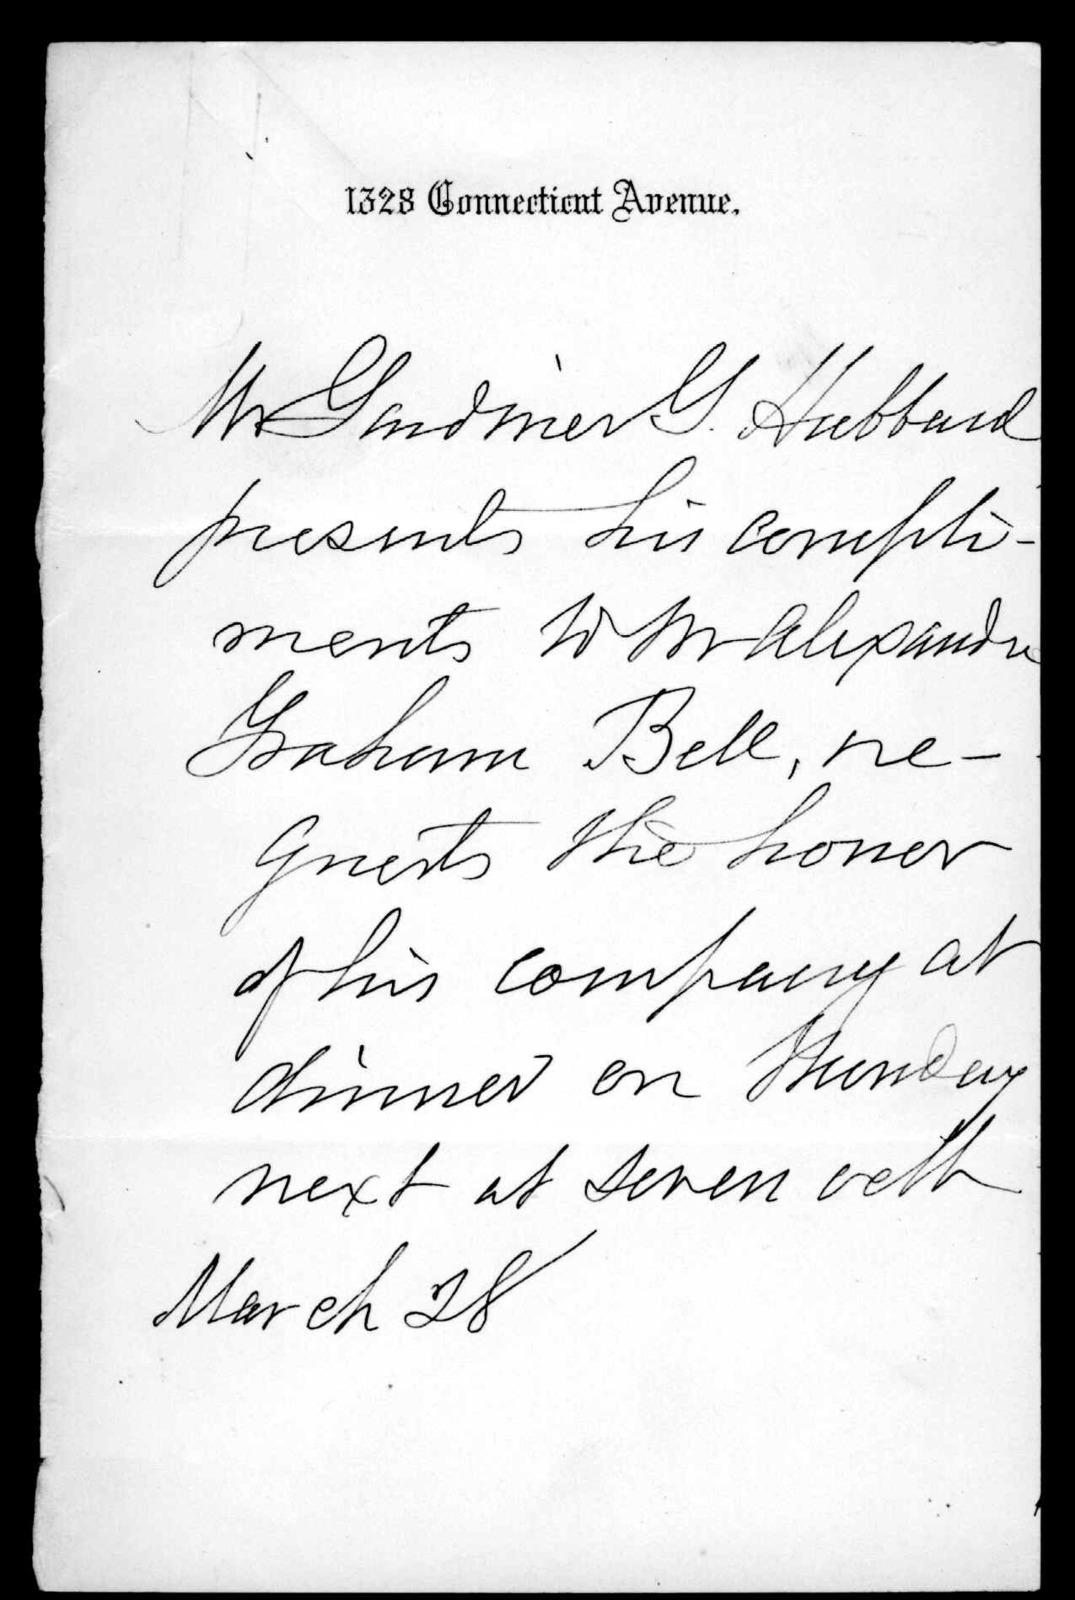 Gardiner Greene Hubbard to Alexander Graham Bell, March 28, [1884]